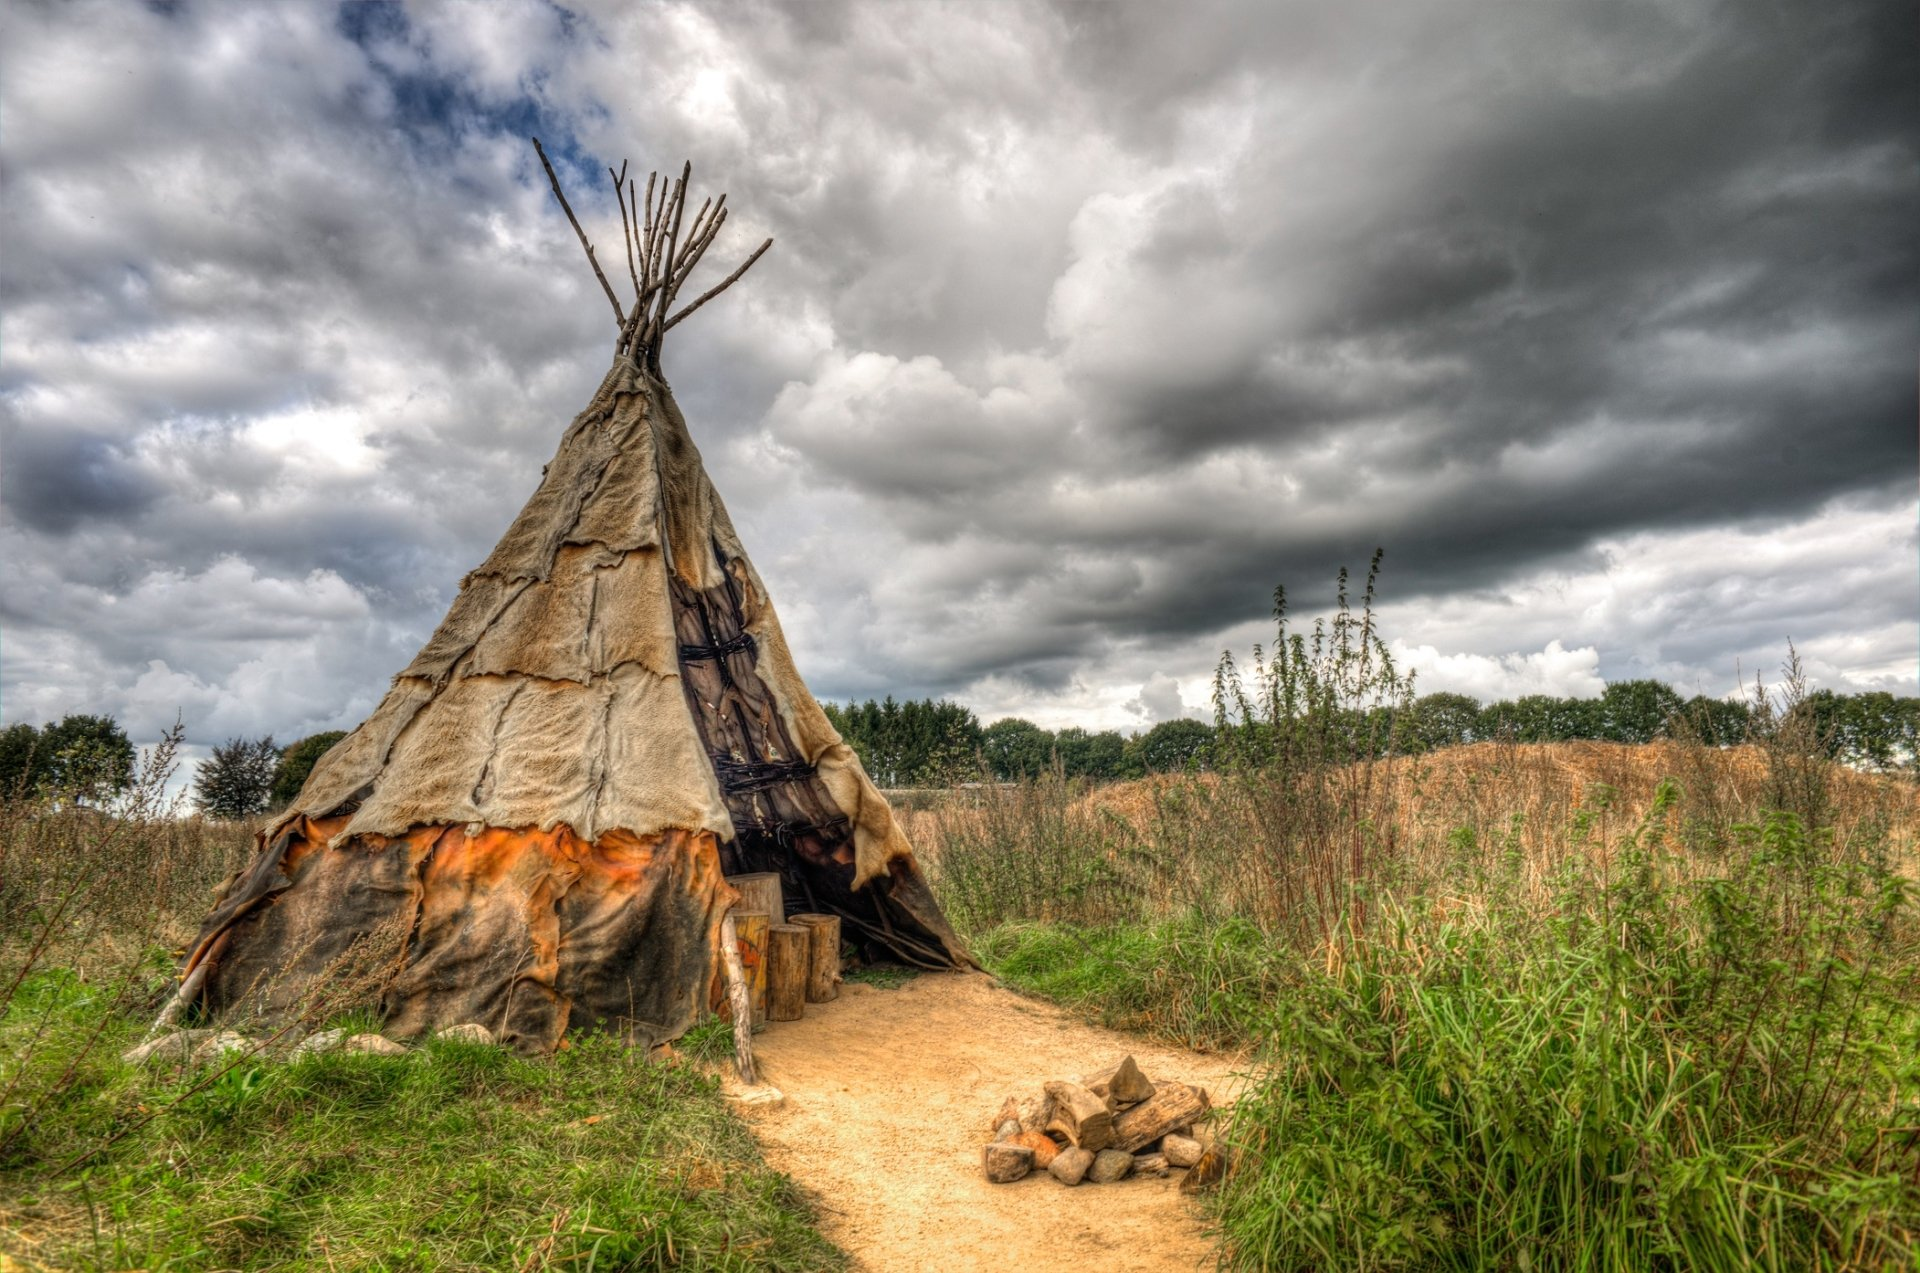 american indian background - photo #39